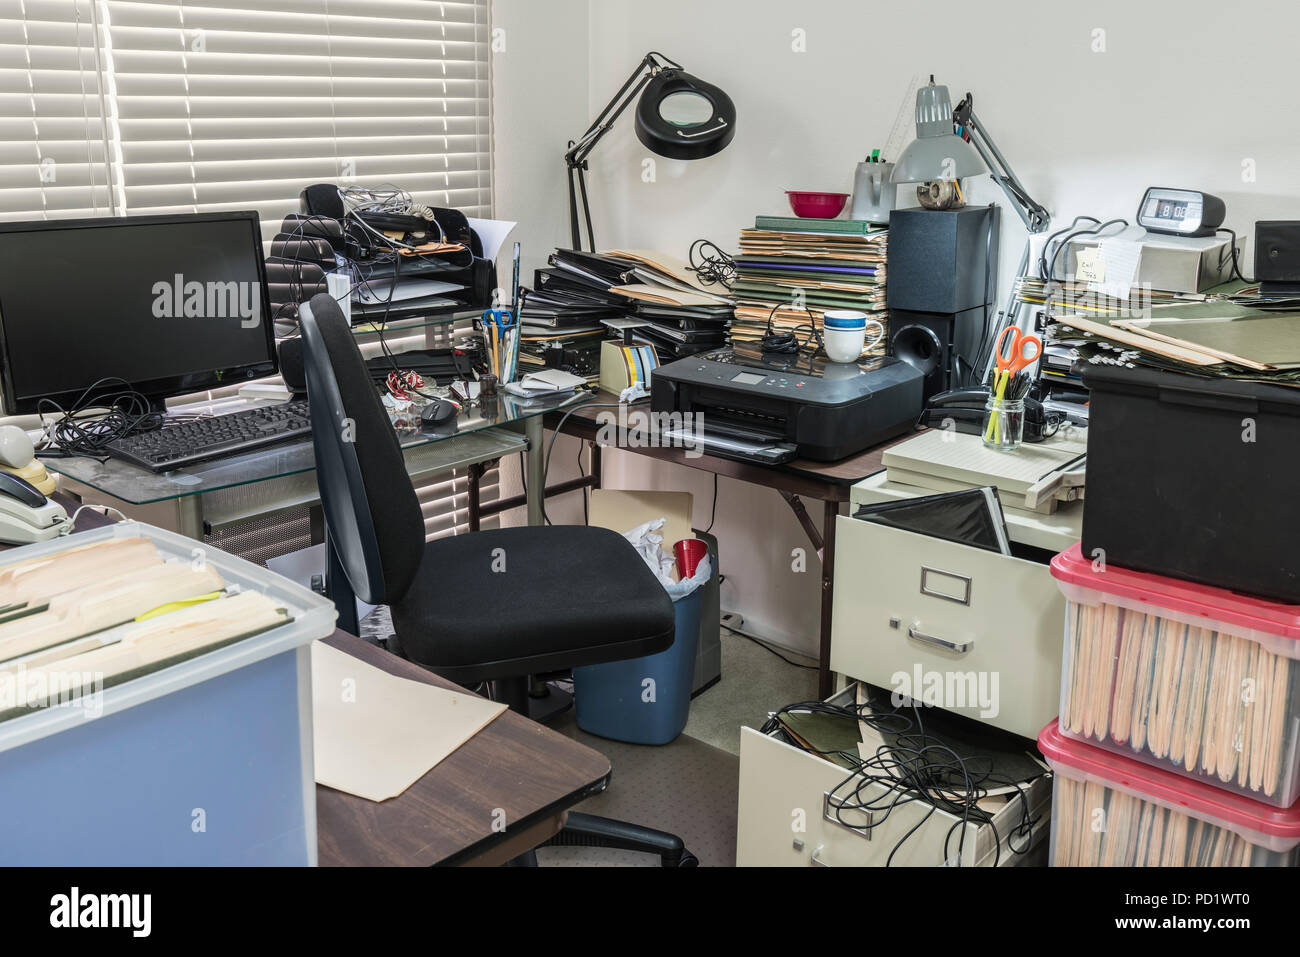 Messy business office desk with boxes of files and disorganized clutter. - Stock Image